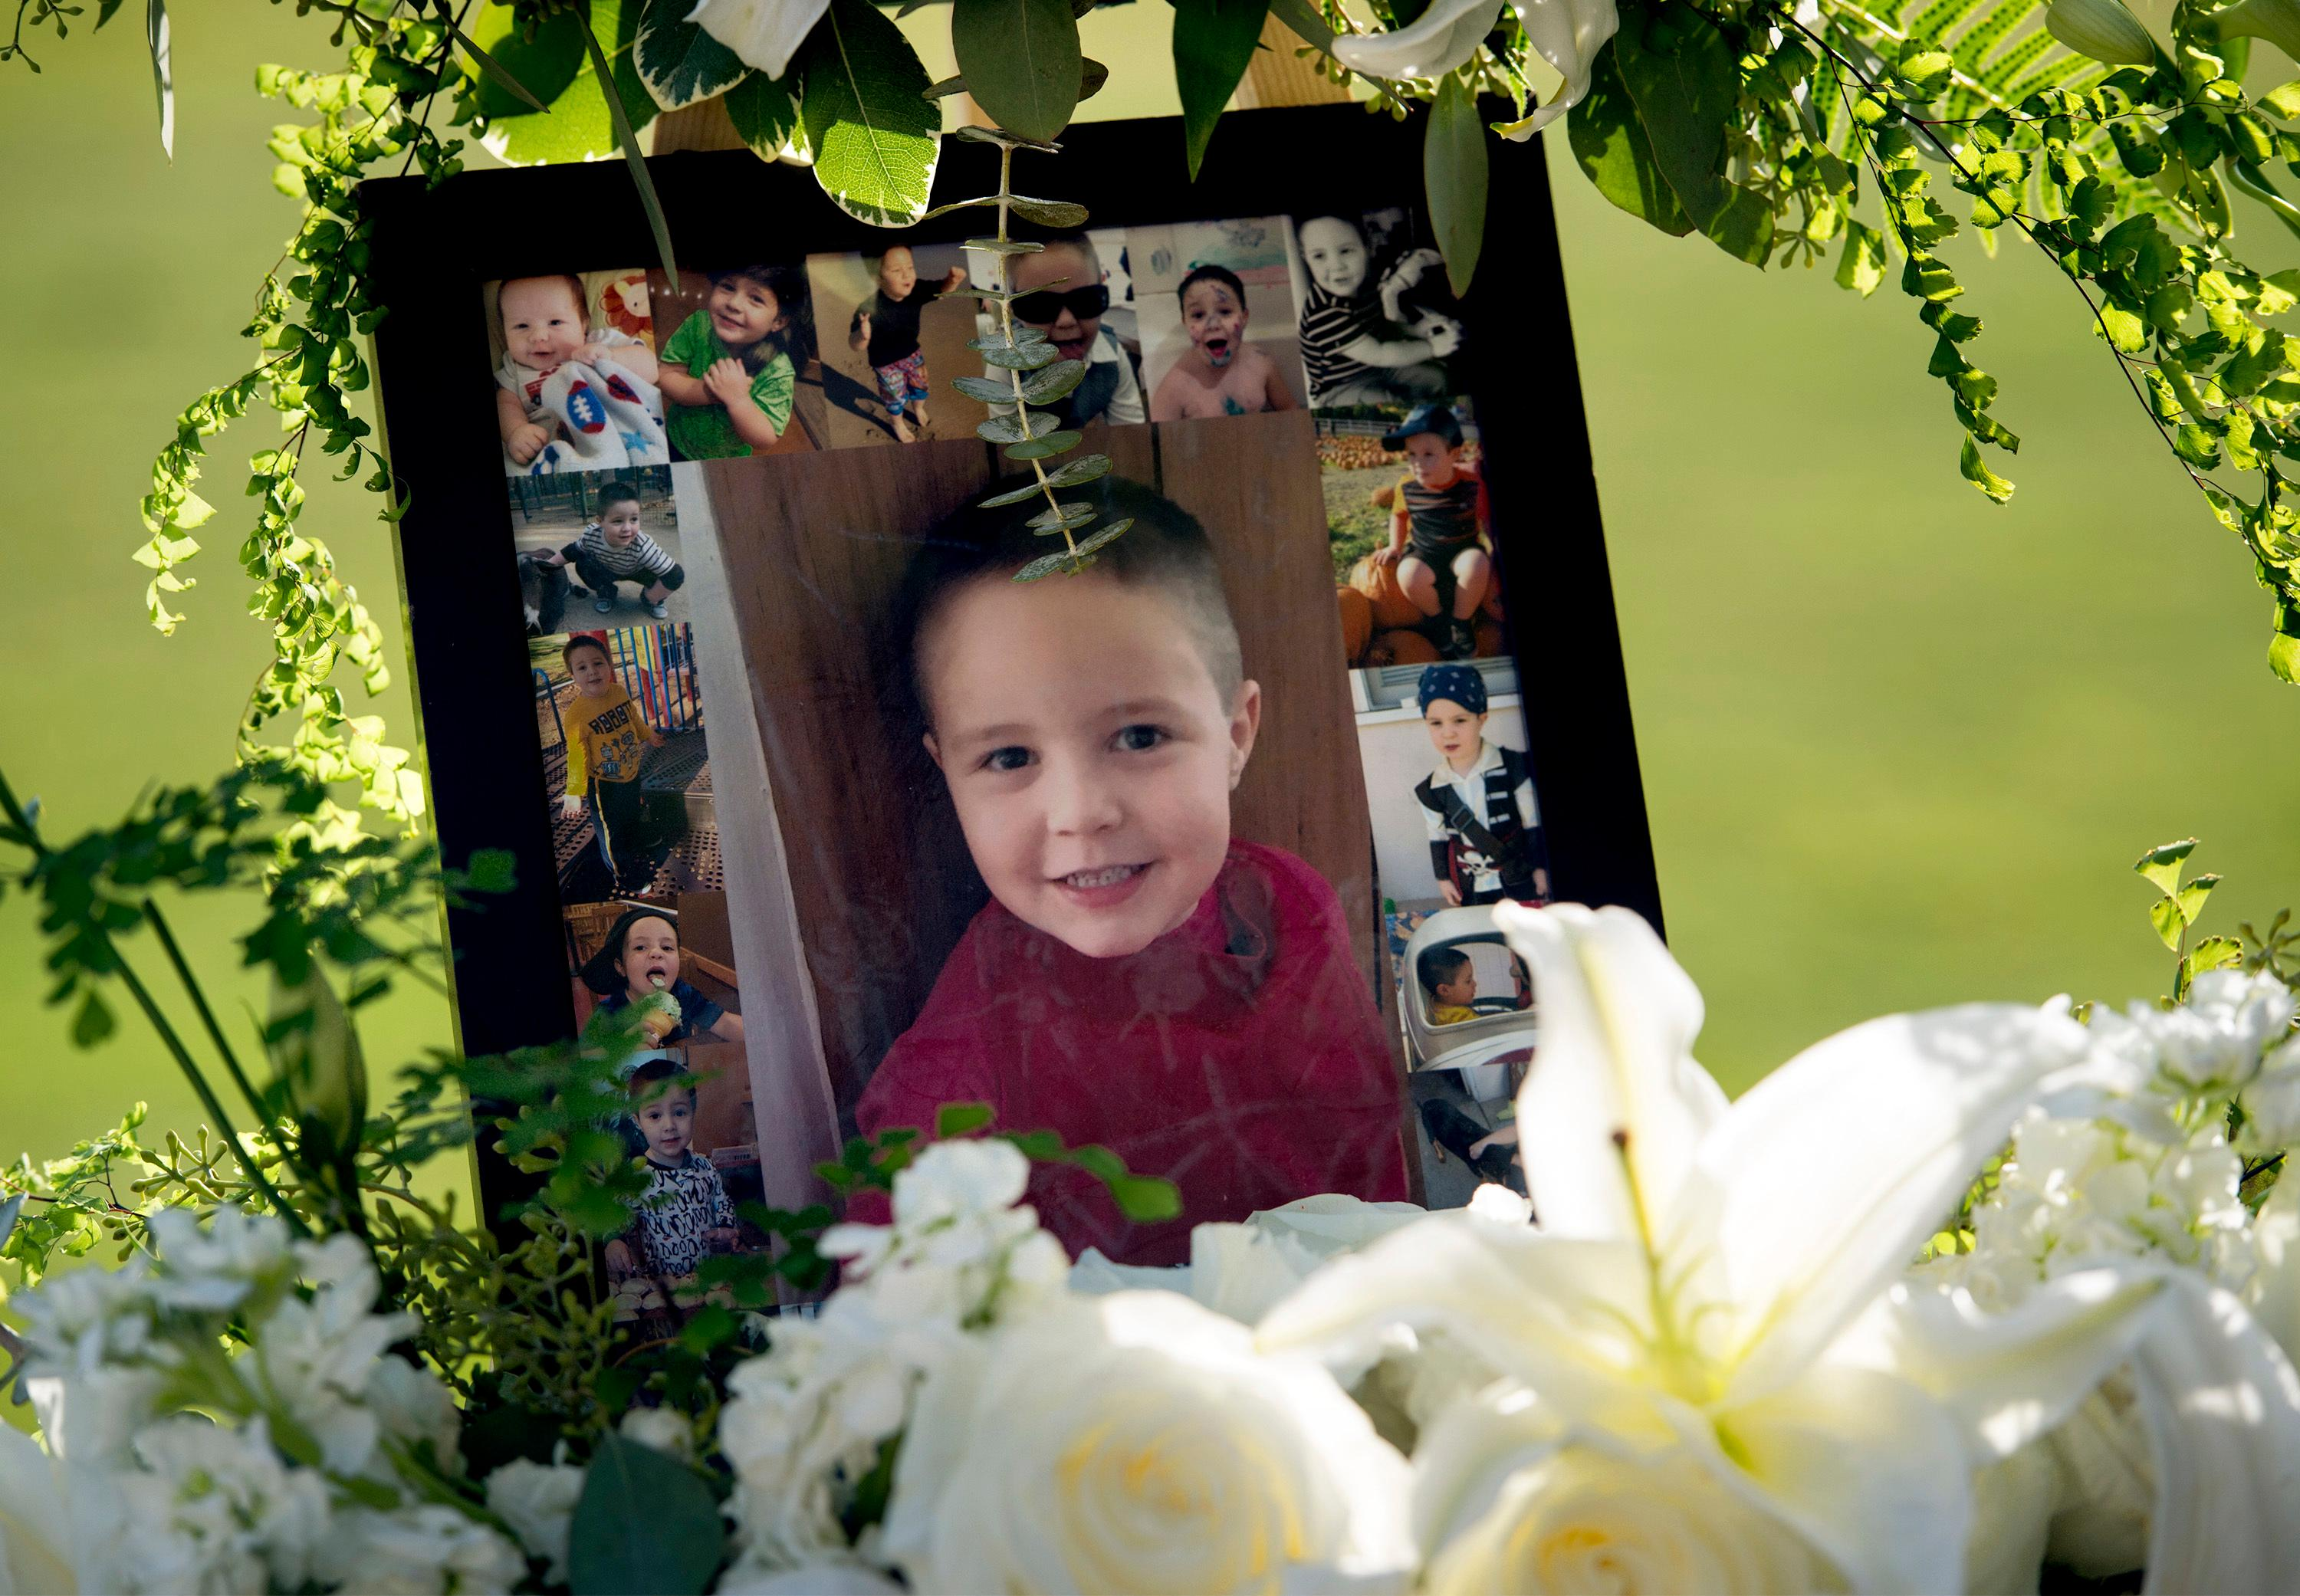 FILE - This July 19, 2017, file photo shows a portrait of 5-year-old Aramazd Andressian Jr. at a memorial service at the Los Angeles County Arboretum in Arcadia, Calif.  (Leo Jarzomb /Los Angeles Daily News/SCNG via AP, File)